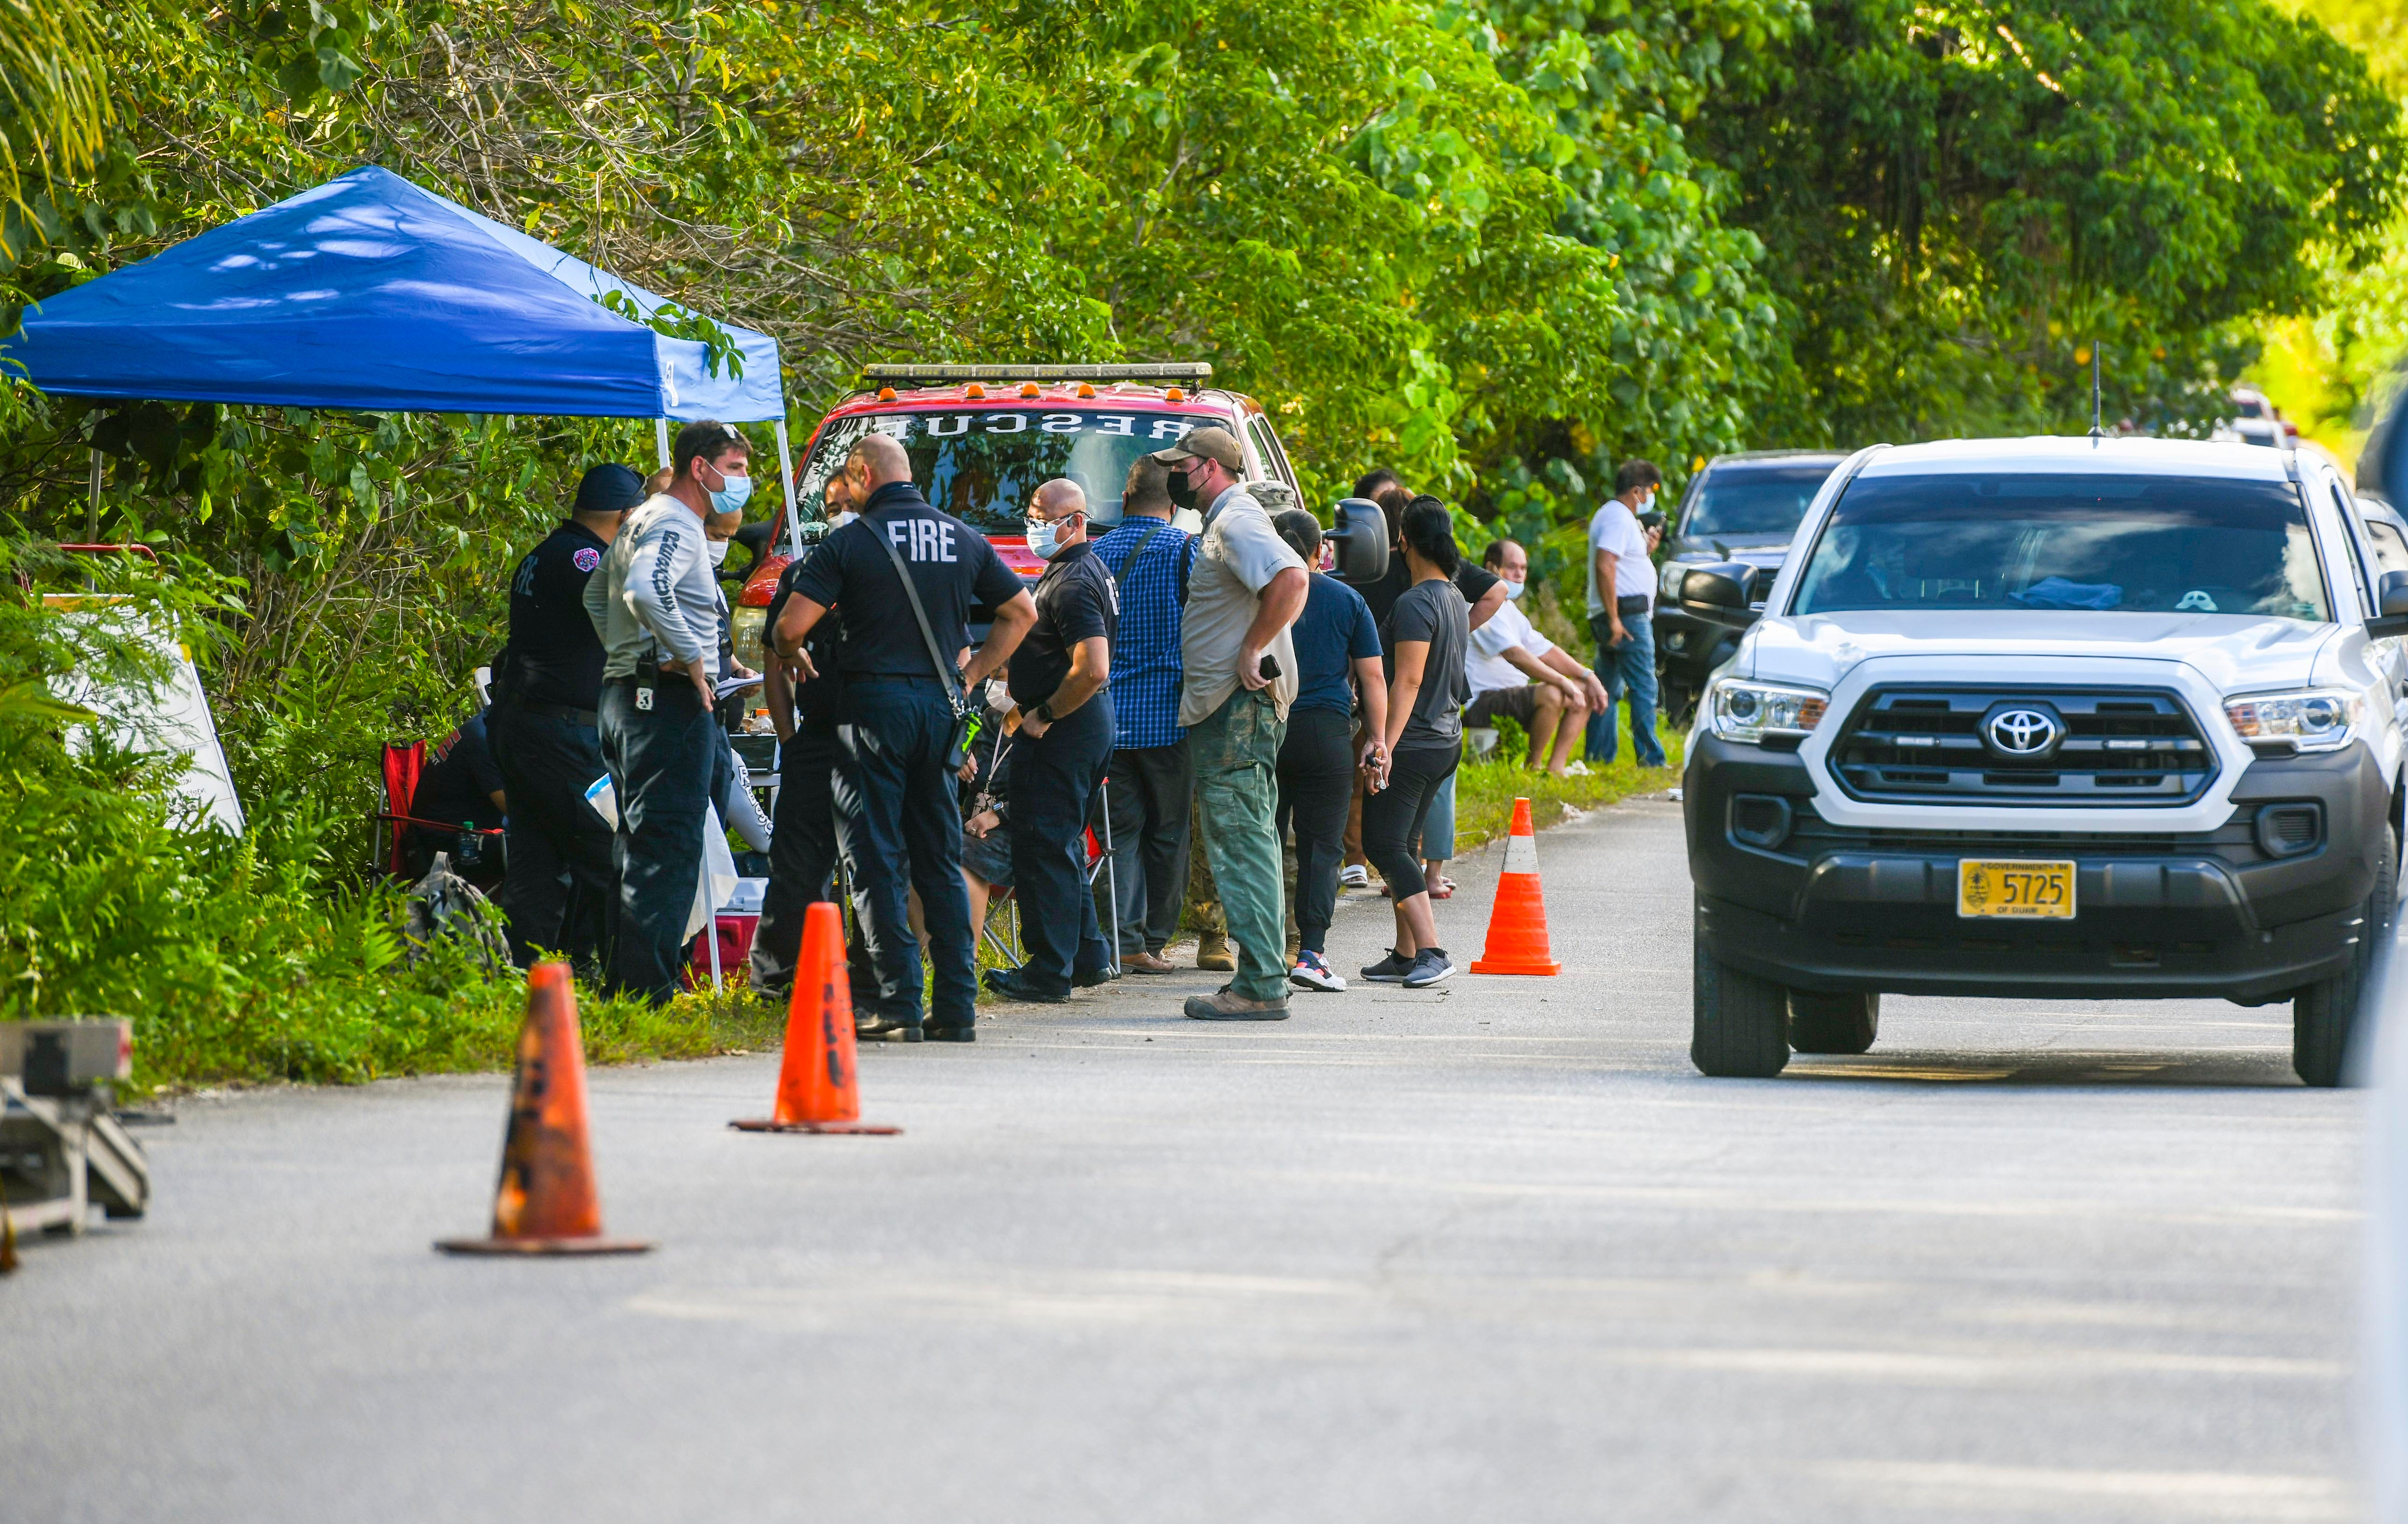 Family and friends of Fernando Canlas gather with Guam Police and Fire Department personnel, Guam National Guard volunteers, Yigo Mayor's Office staff and others, along Chalan Josefan Felix Gallo during a search for the man in Yigo on Thursday, April 8, 2021. Canlas, 71, who has dementia was reported missing earlier in the day by family members, according to Cherika Chargualaf, GFD acting spokesperson.